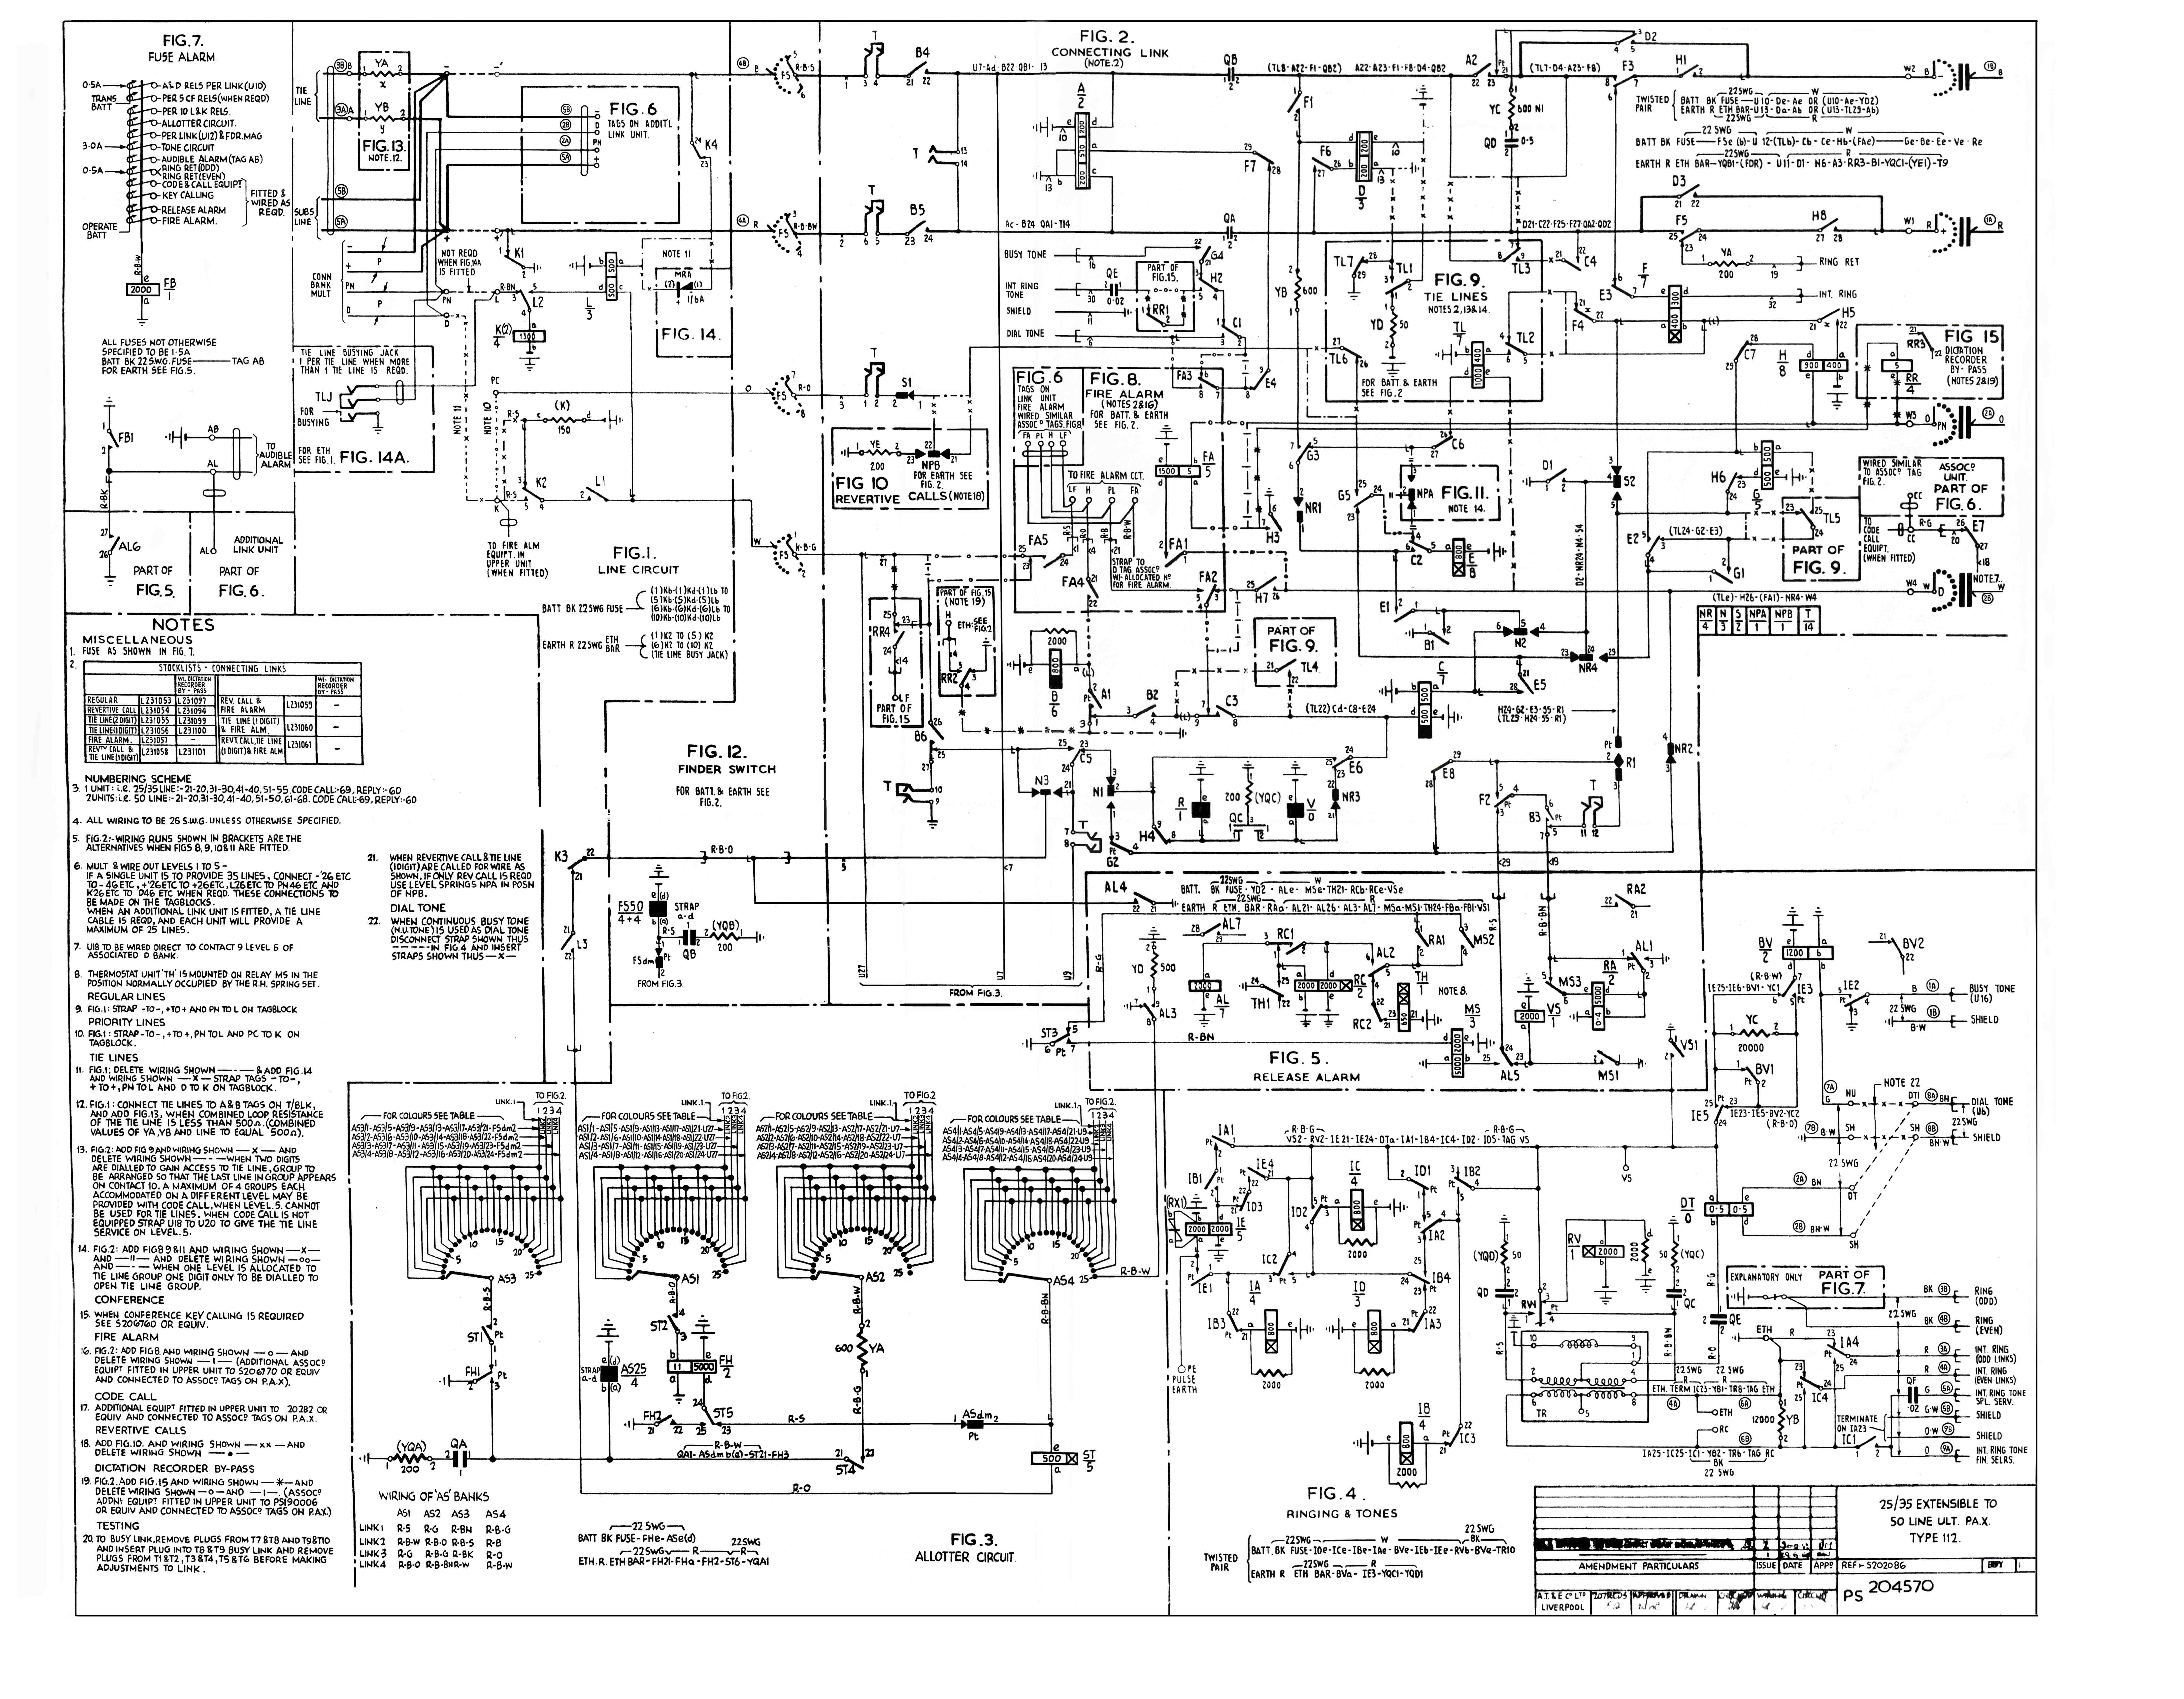 Caterpillar C7 Engine Wiring Diagram